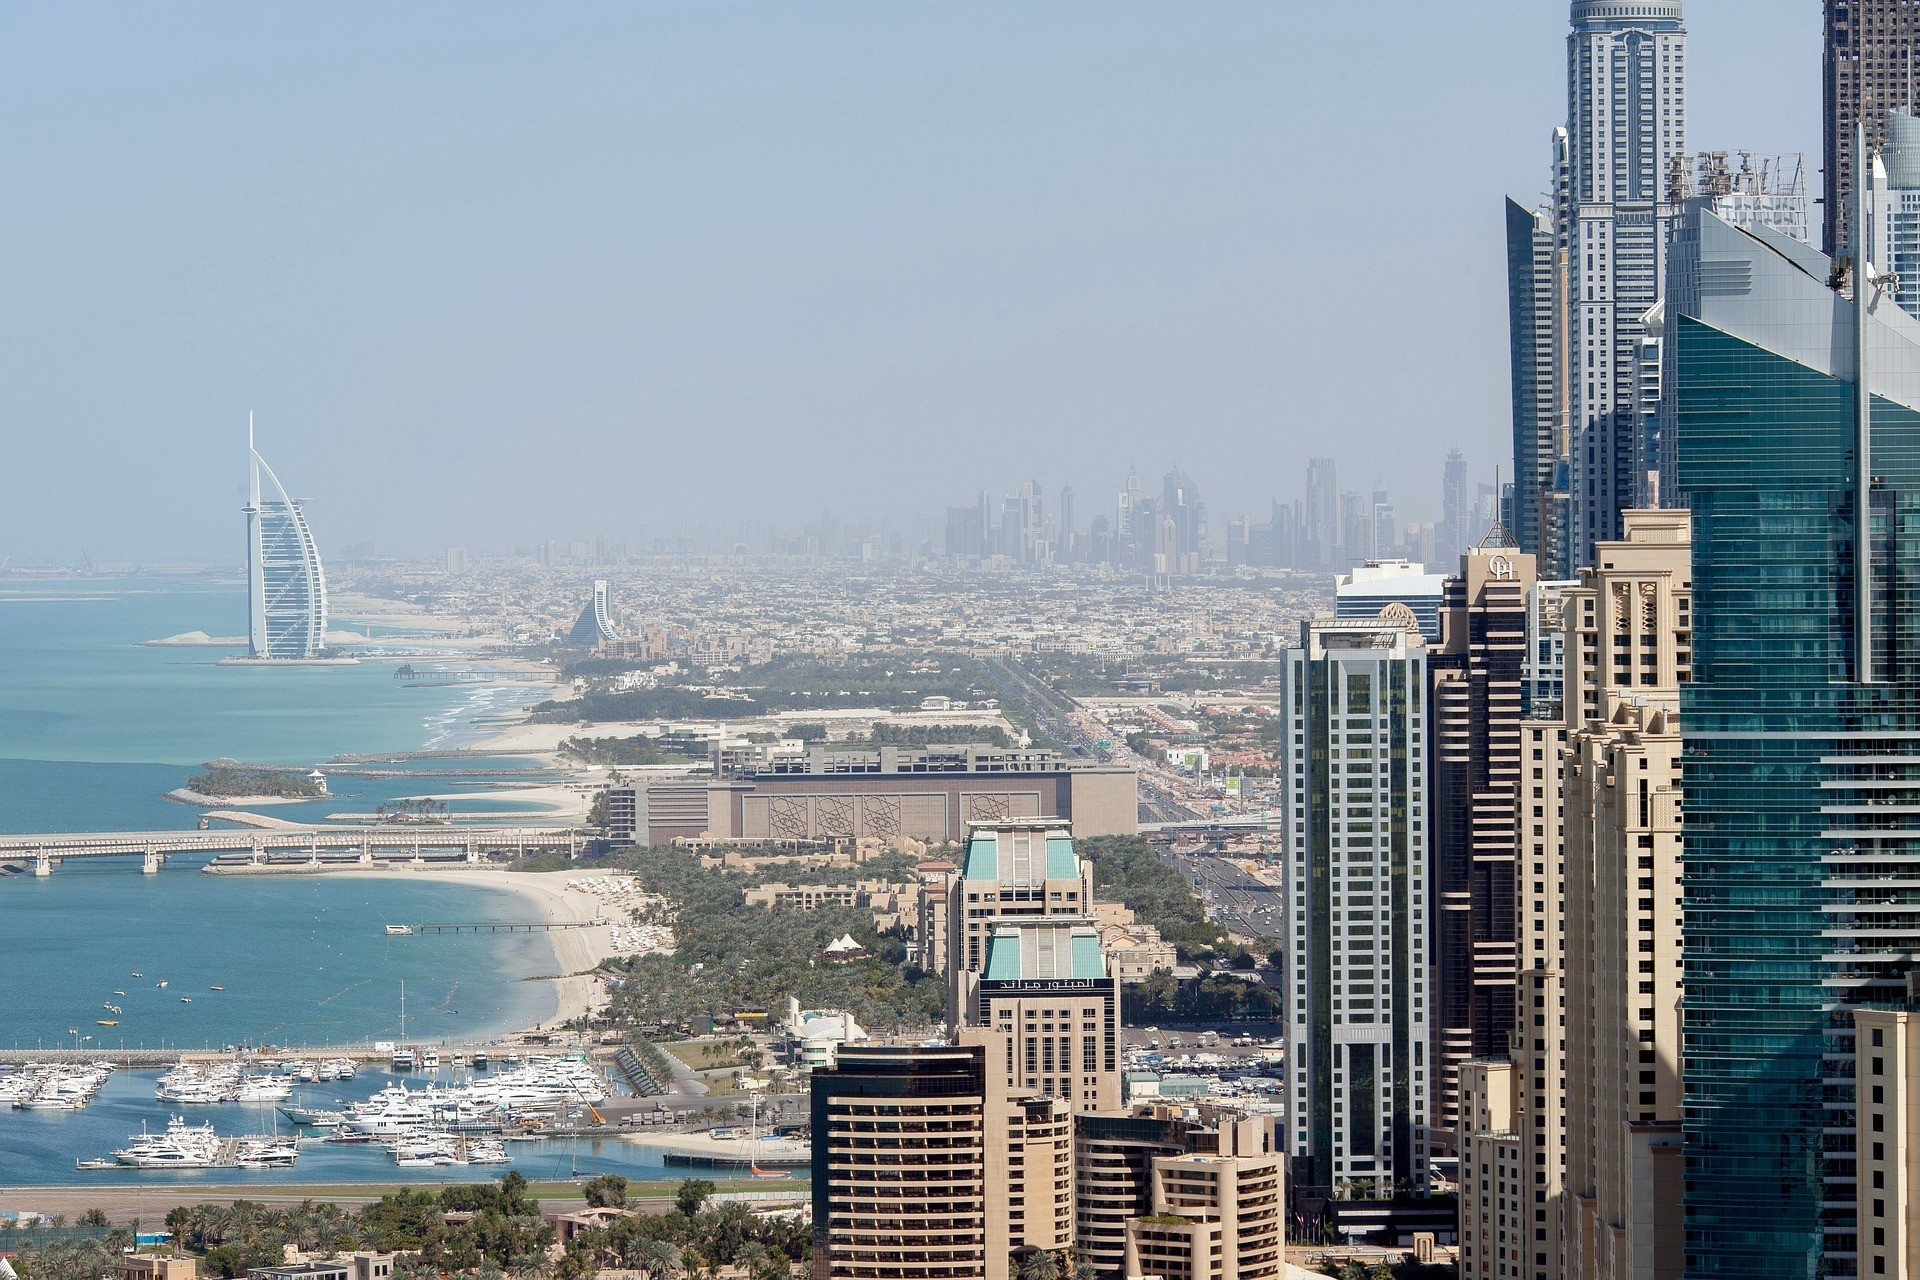 Dubai looking safe and mighty nice to live in